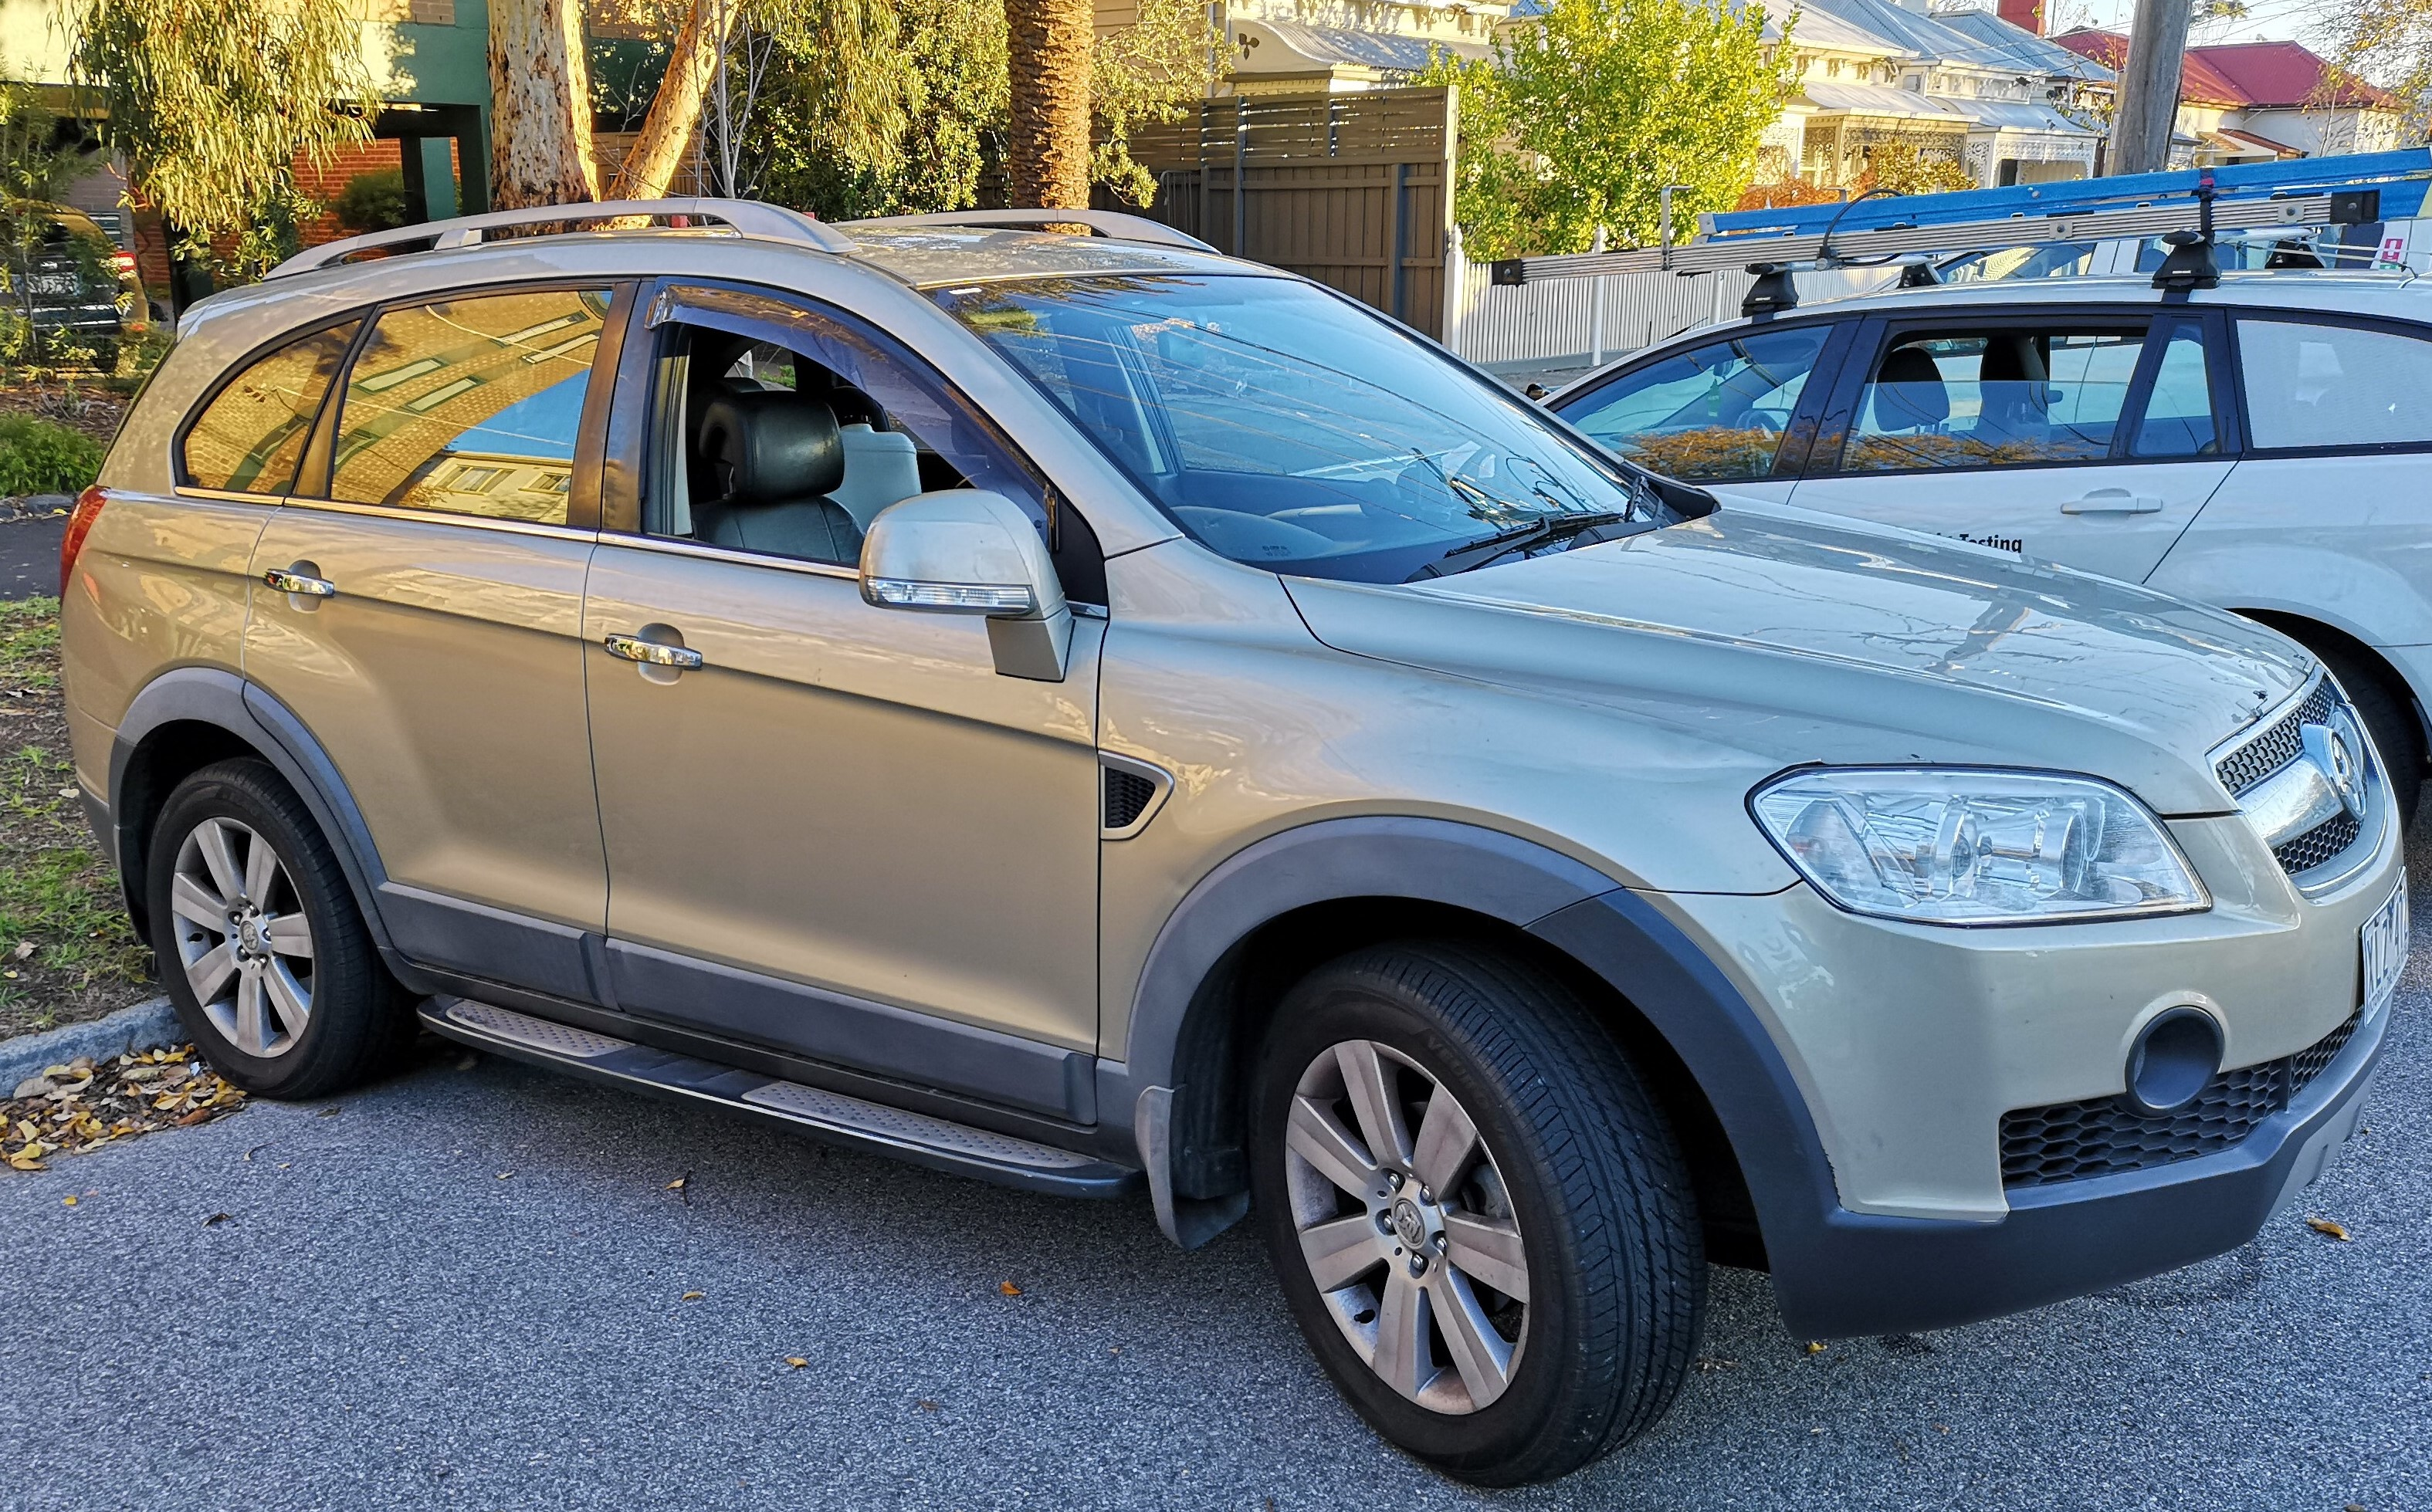 Picture of Alexandre's 2008 Holden Captiva